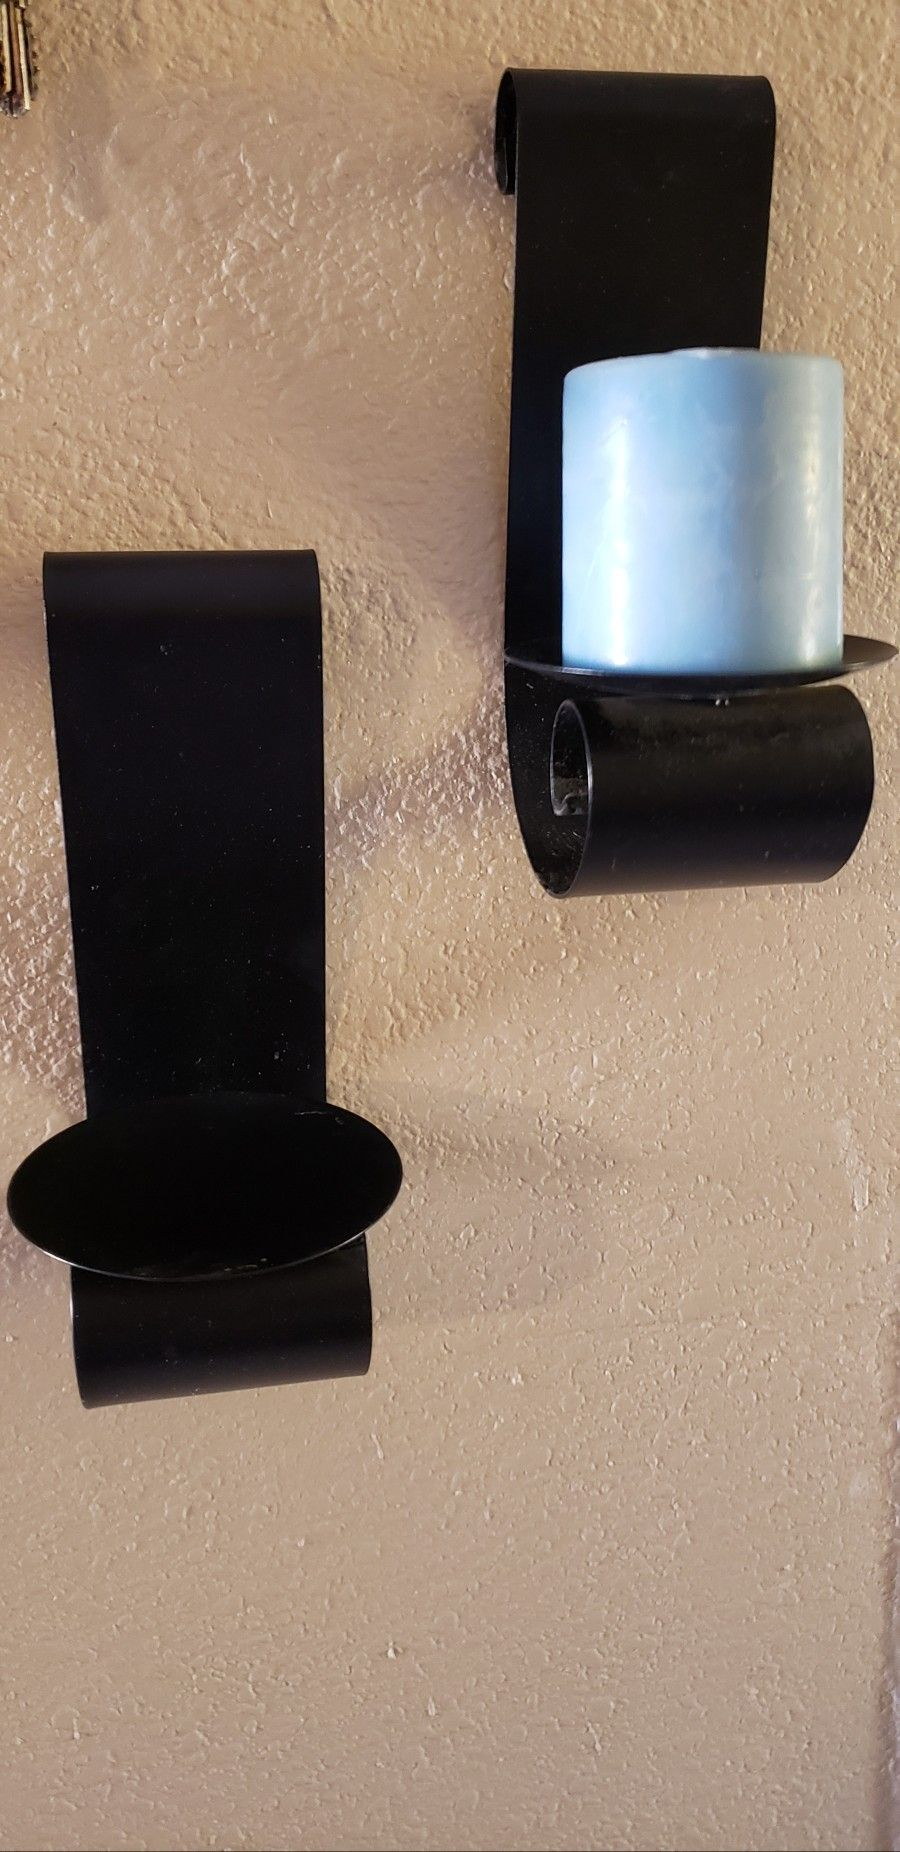 Candle Wall Display/Holders **Price Is For BOTH**